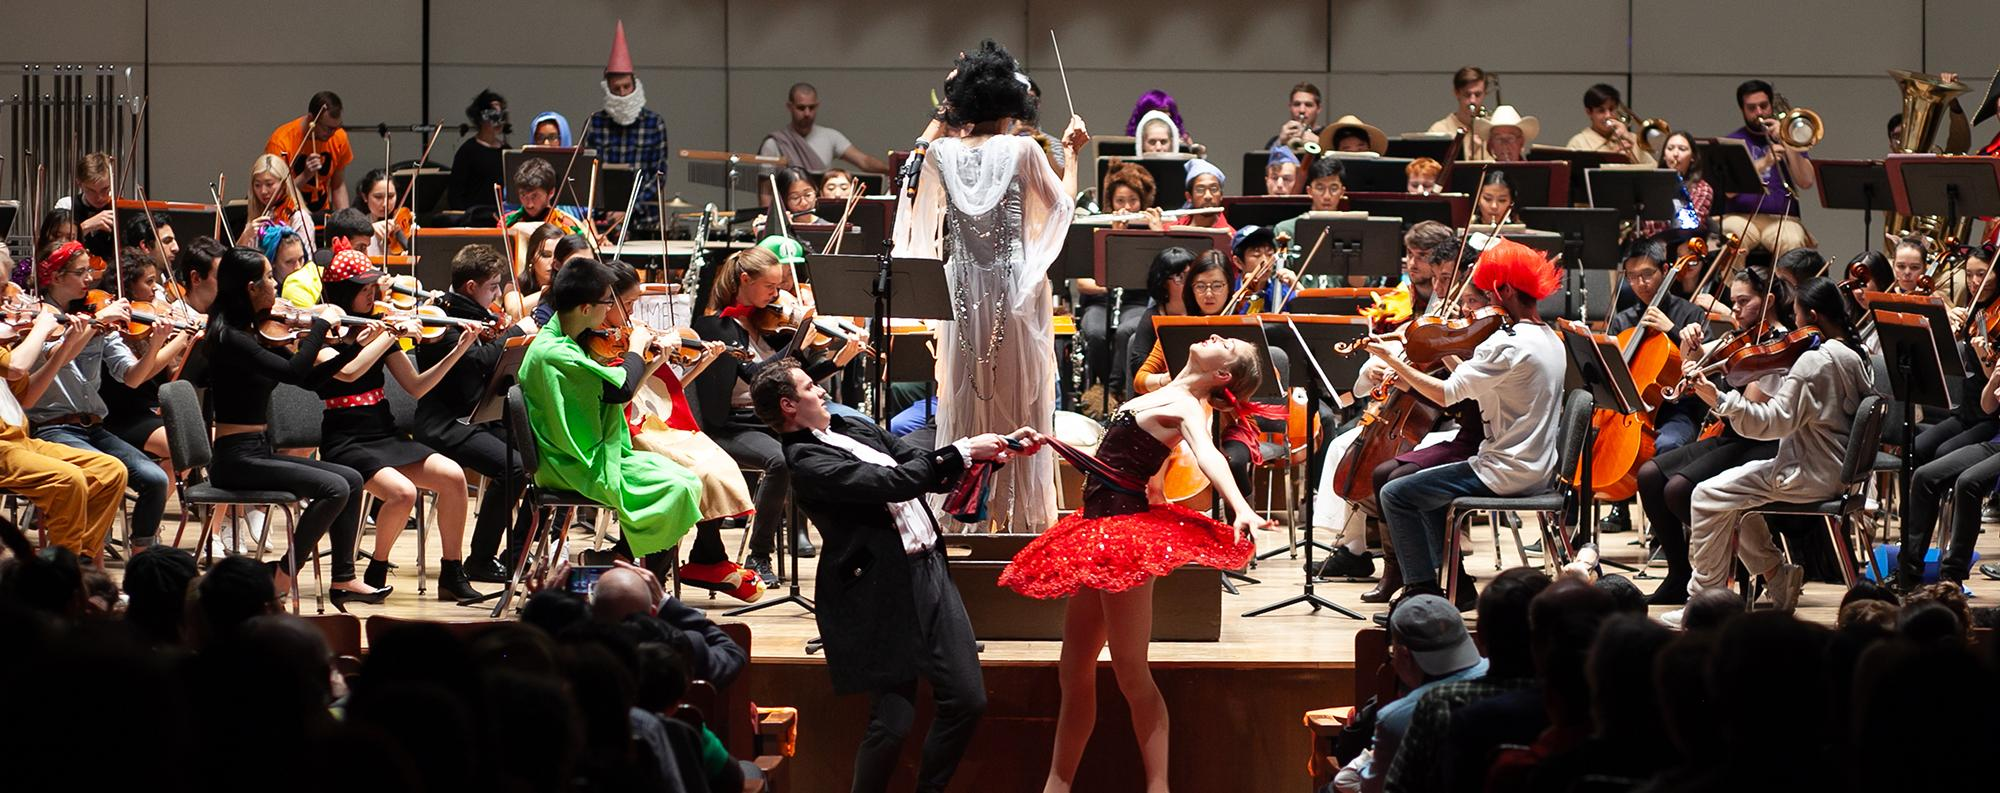 Photo of the University Symphony Orchestra and dancers from the Hyde Park School of Dance performing in costume